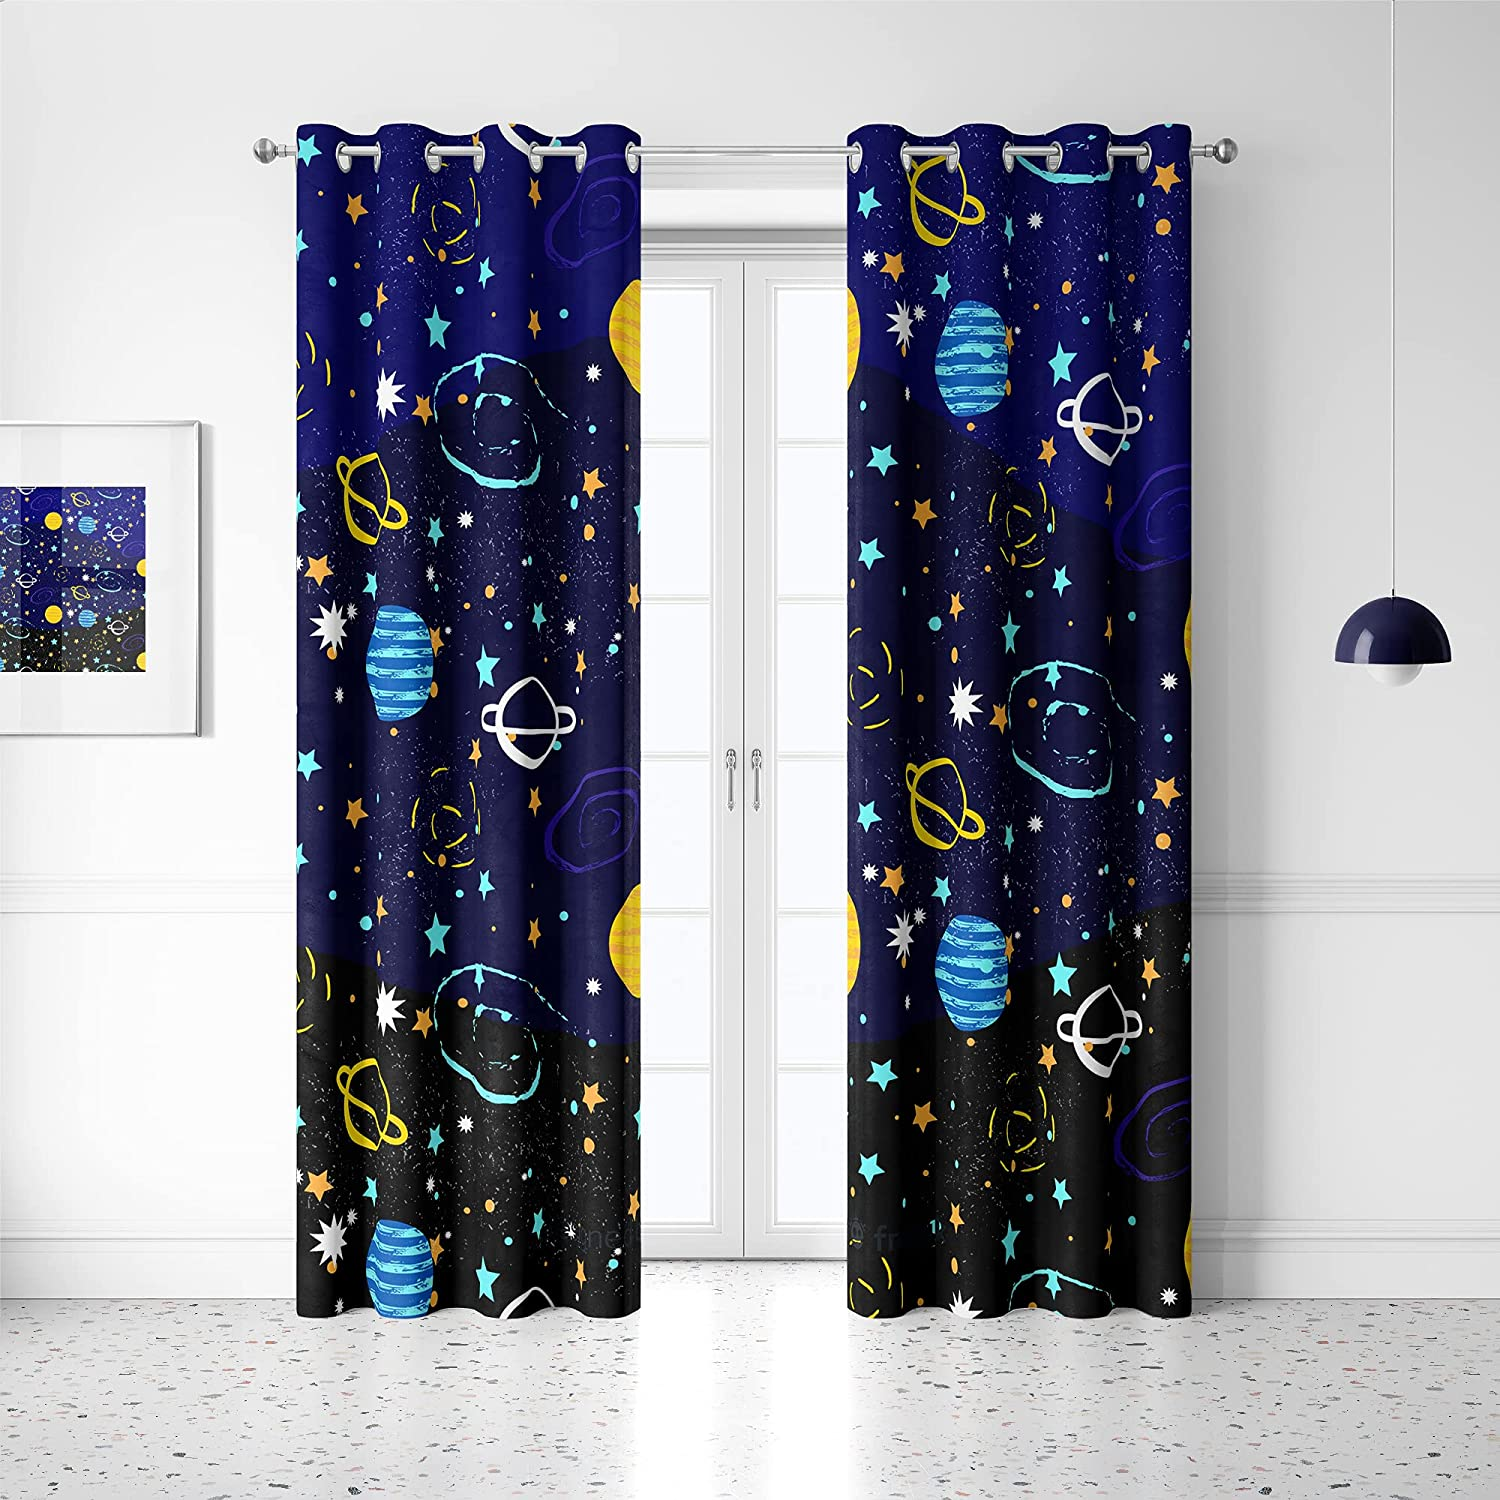 Space Universe Blackout Curtains Online limited product Planets Cosmic Colorful Seattle Mall Cartoon